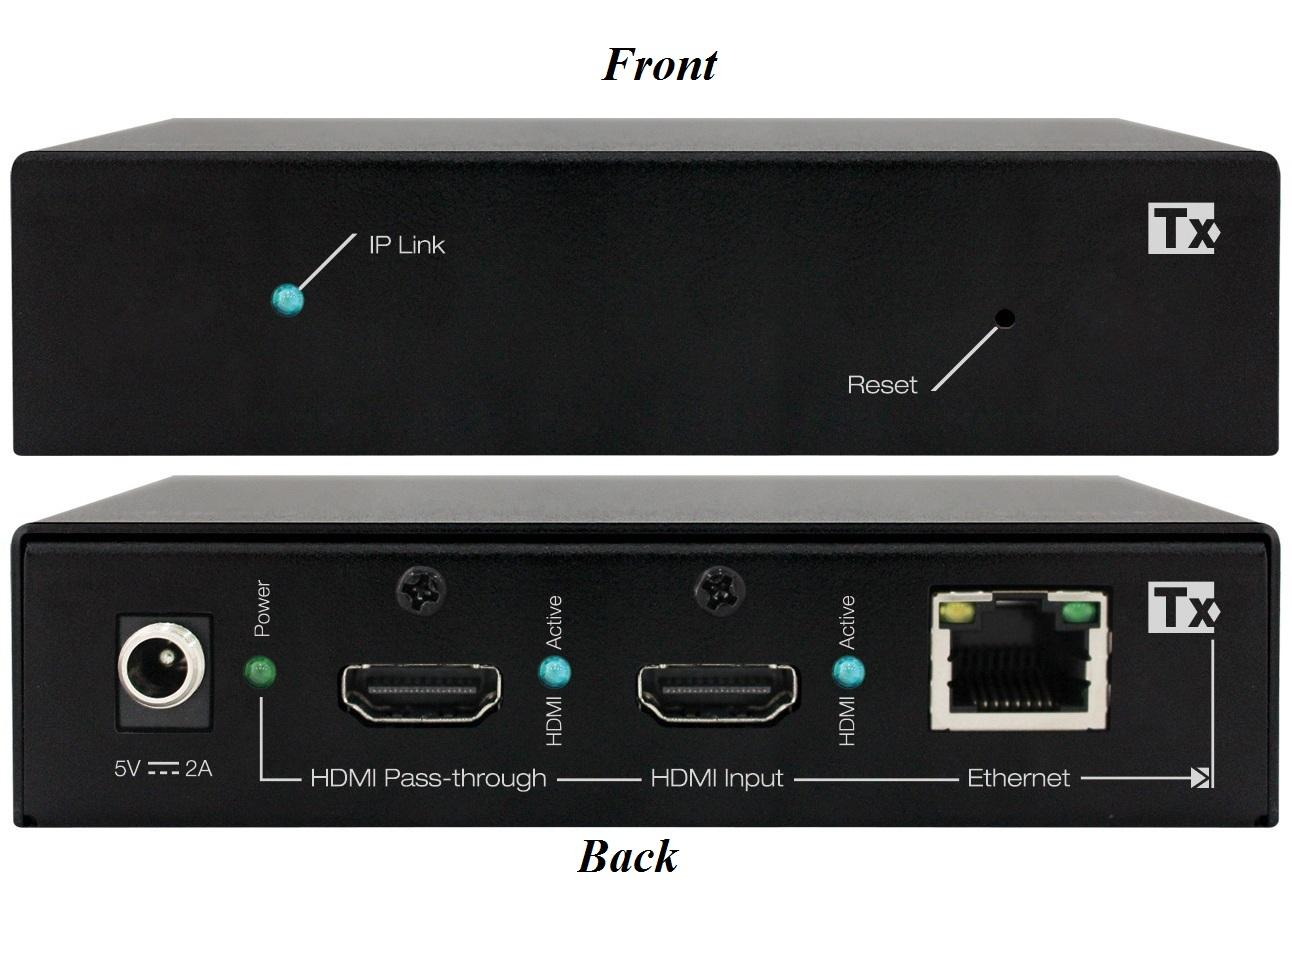 KD-IP120POETx HDMI over IP POE Extender (Transmitter) with HDMI Pass-through by Key Digital